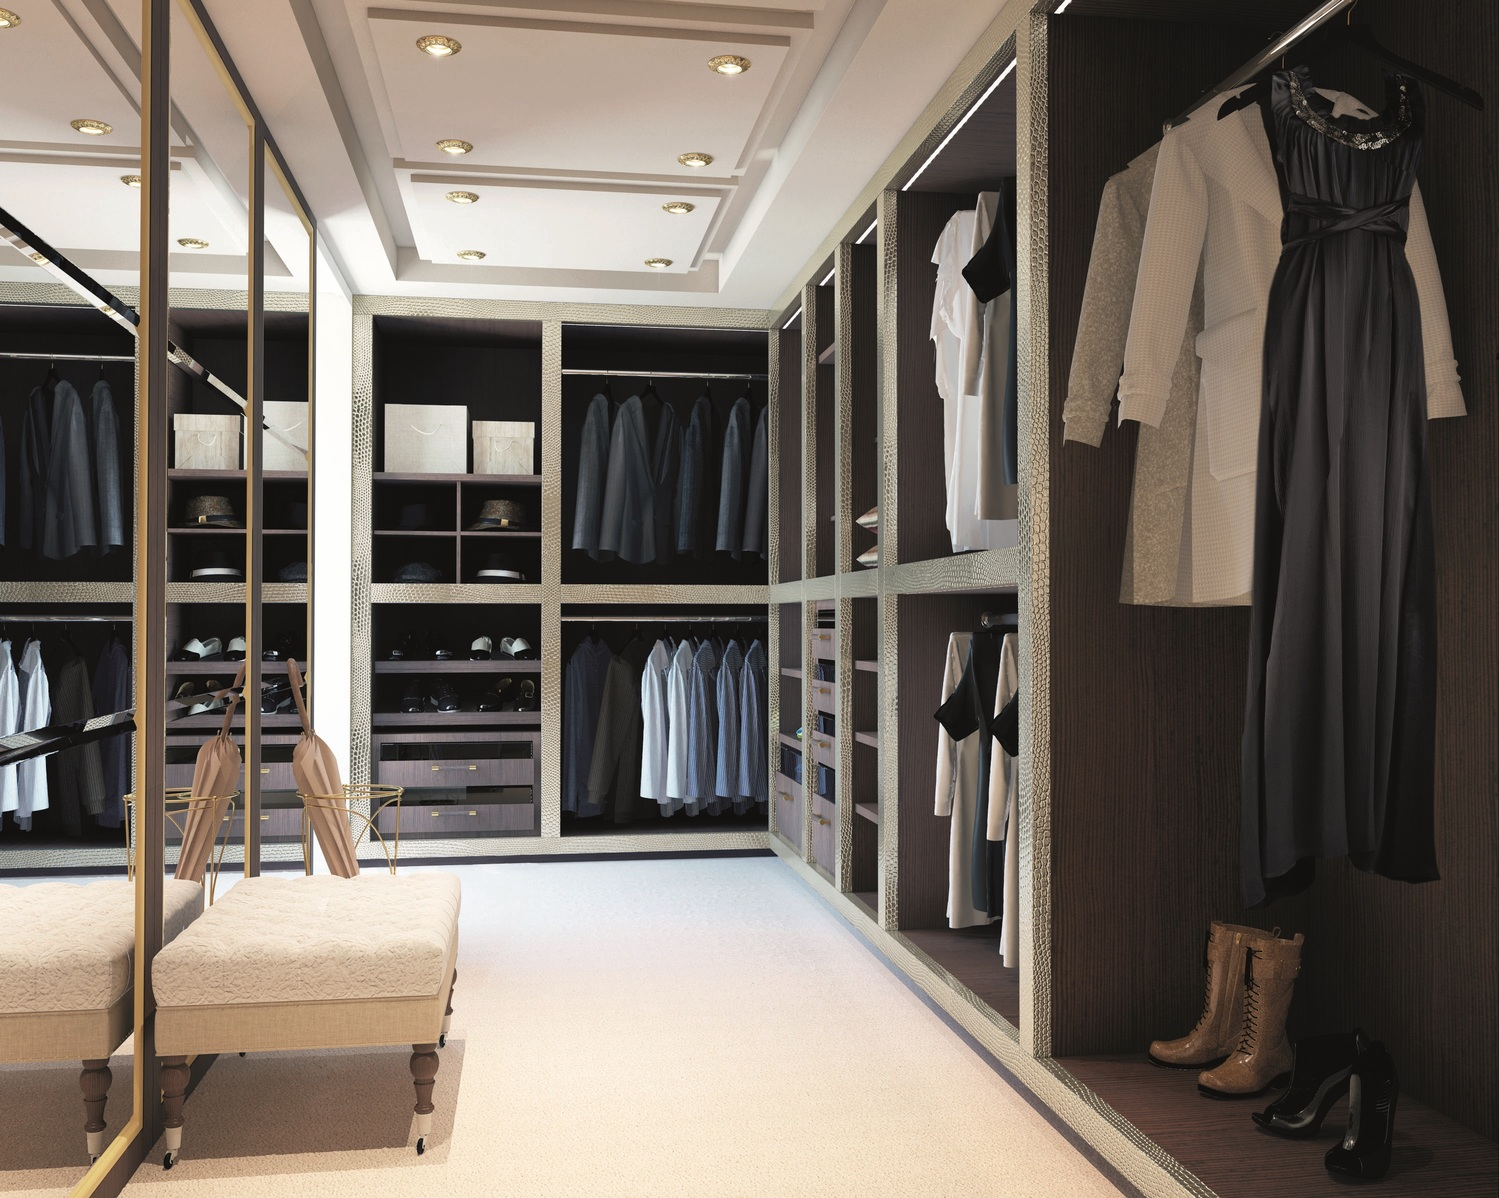 35 images of wardrobe designs for bedrooms for Walk in wardrobe design